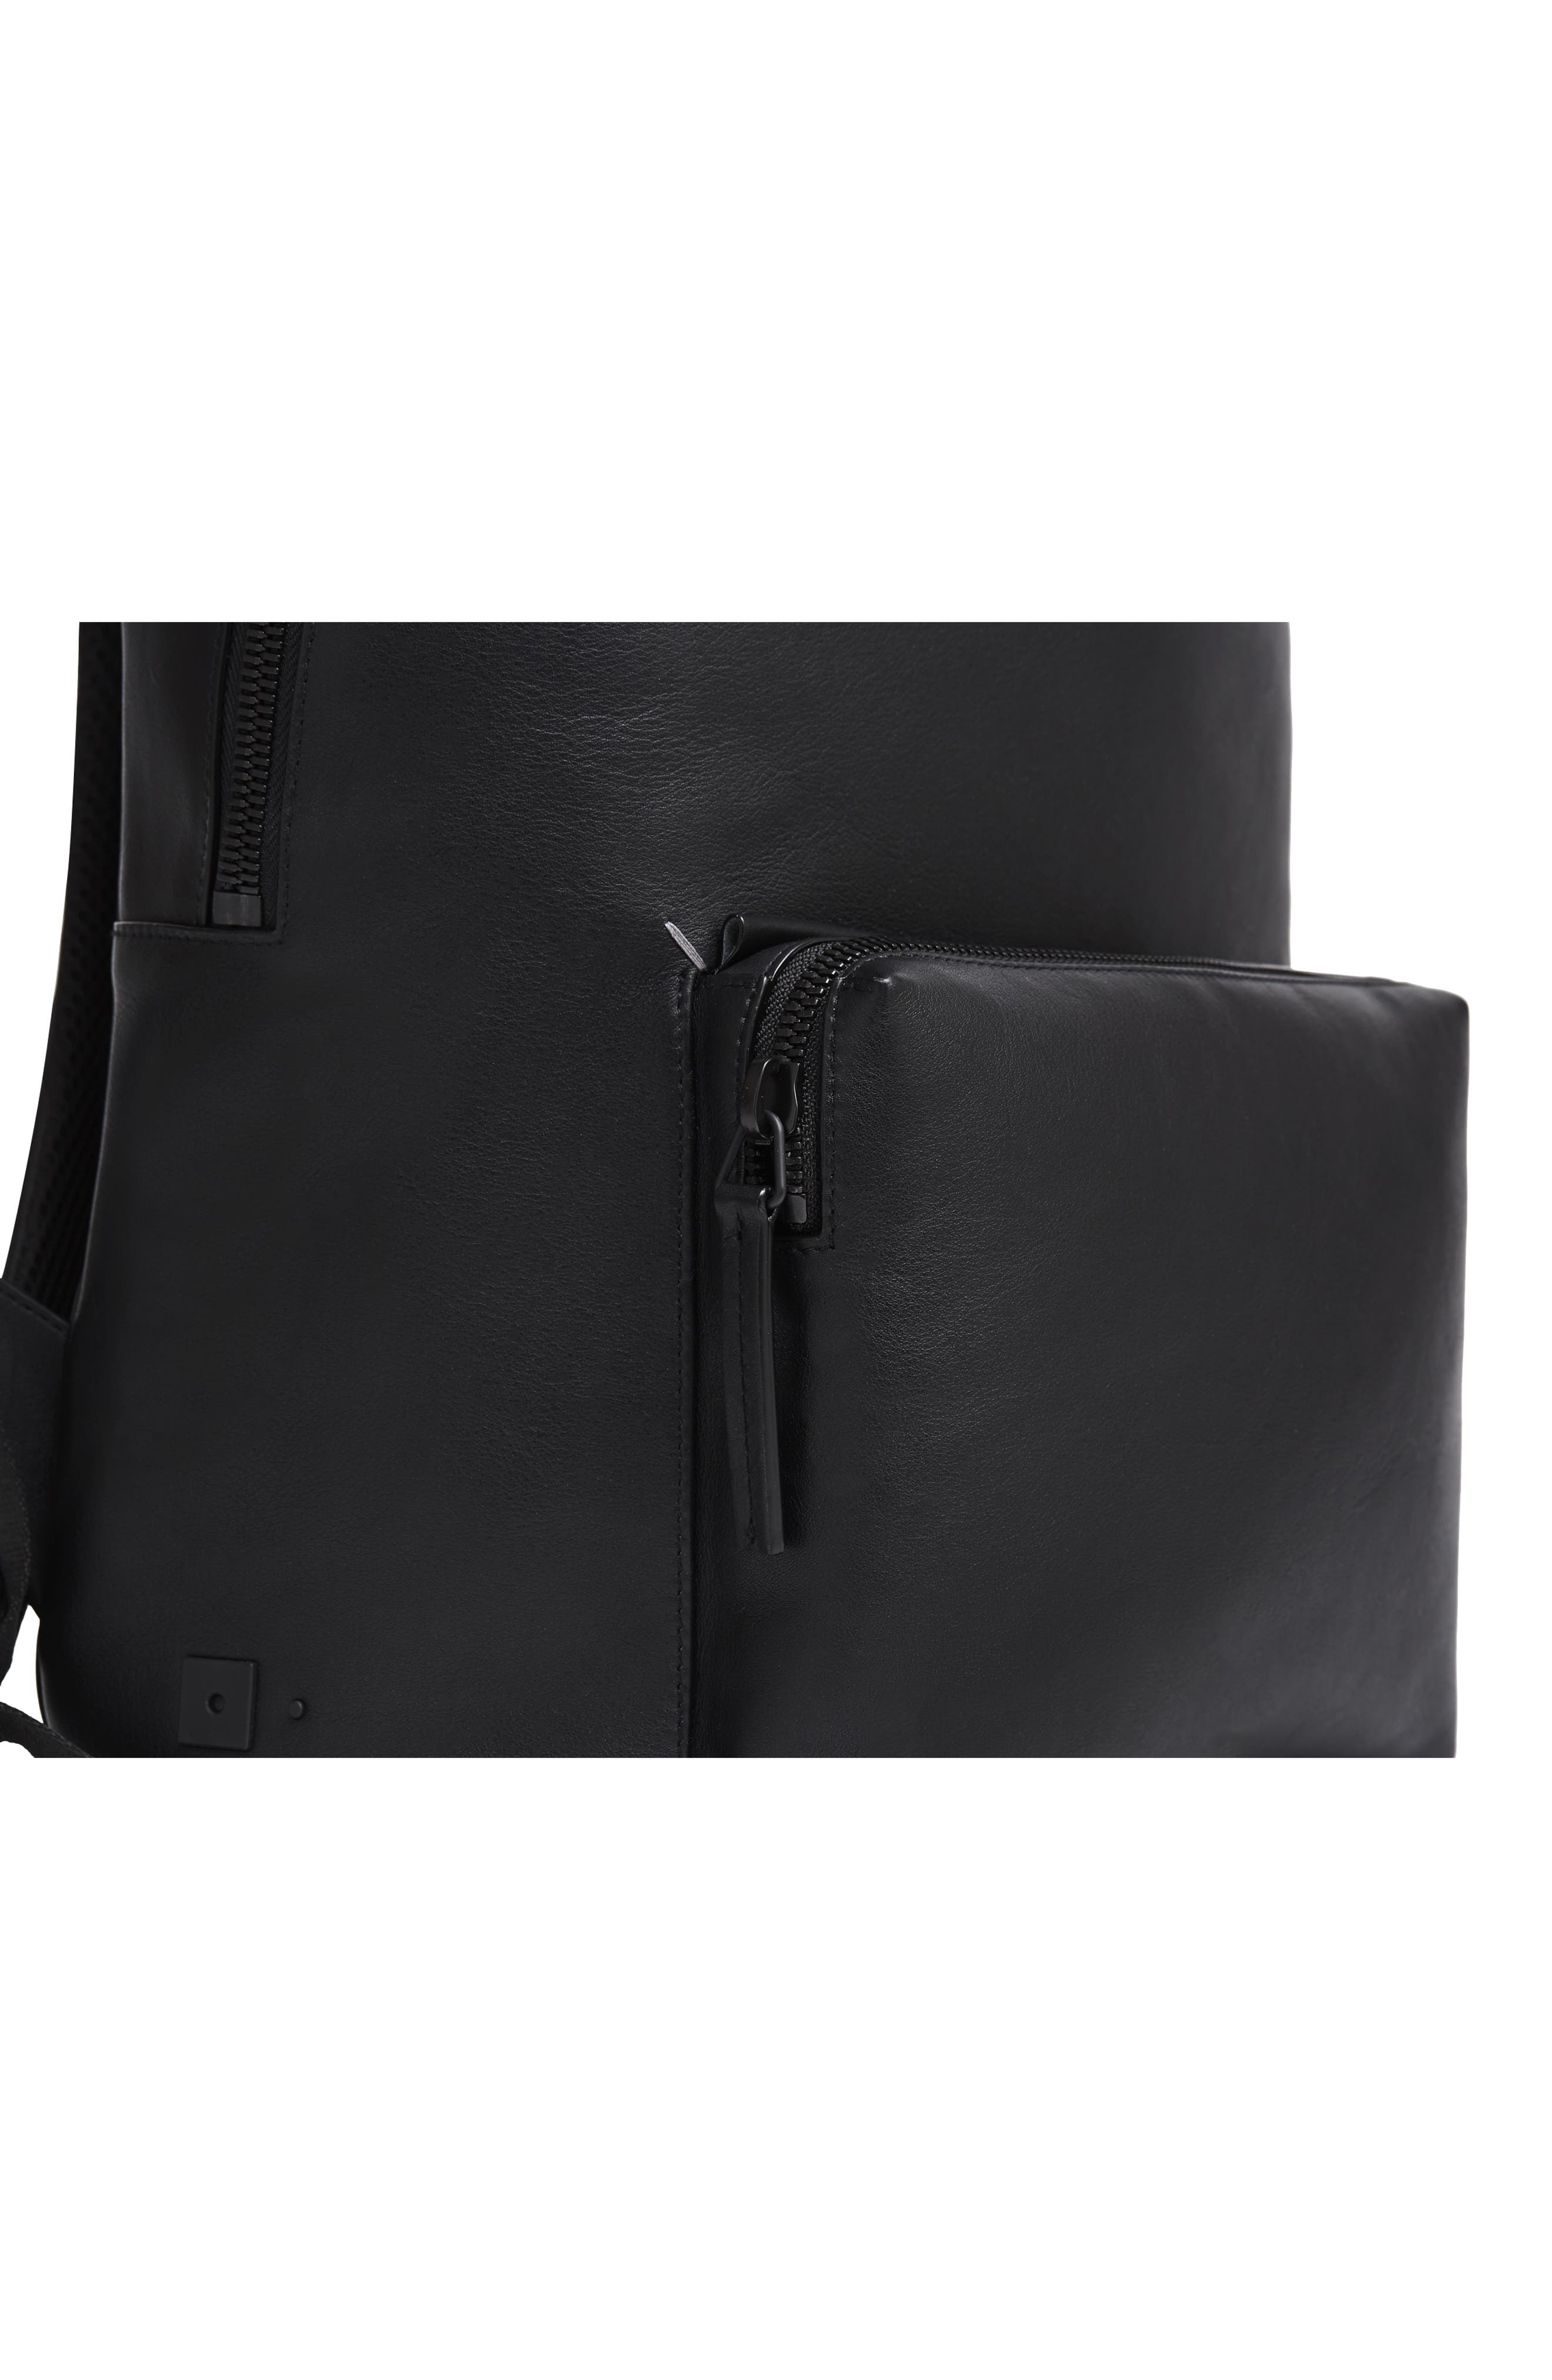 Leather Backpack,                             Alternate thumbnail 7, color,                             BLACK LEATHER